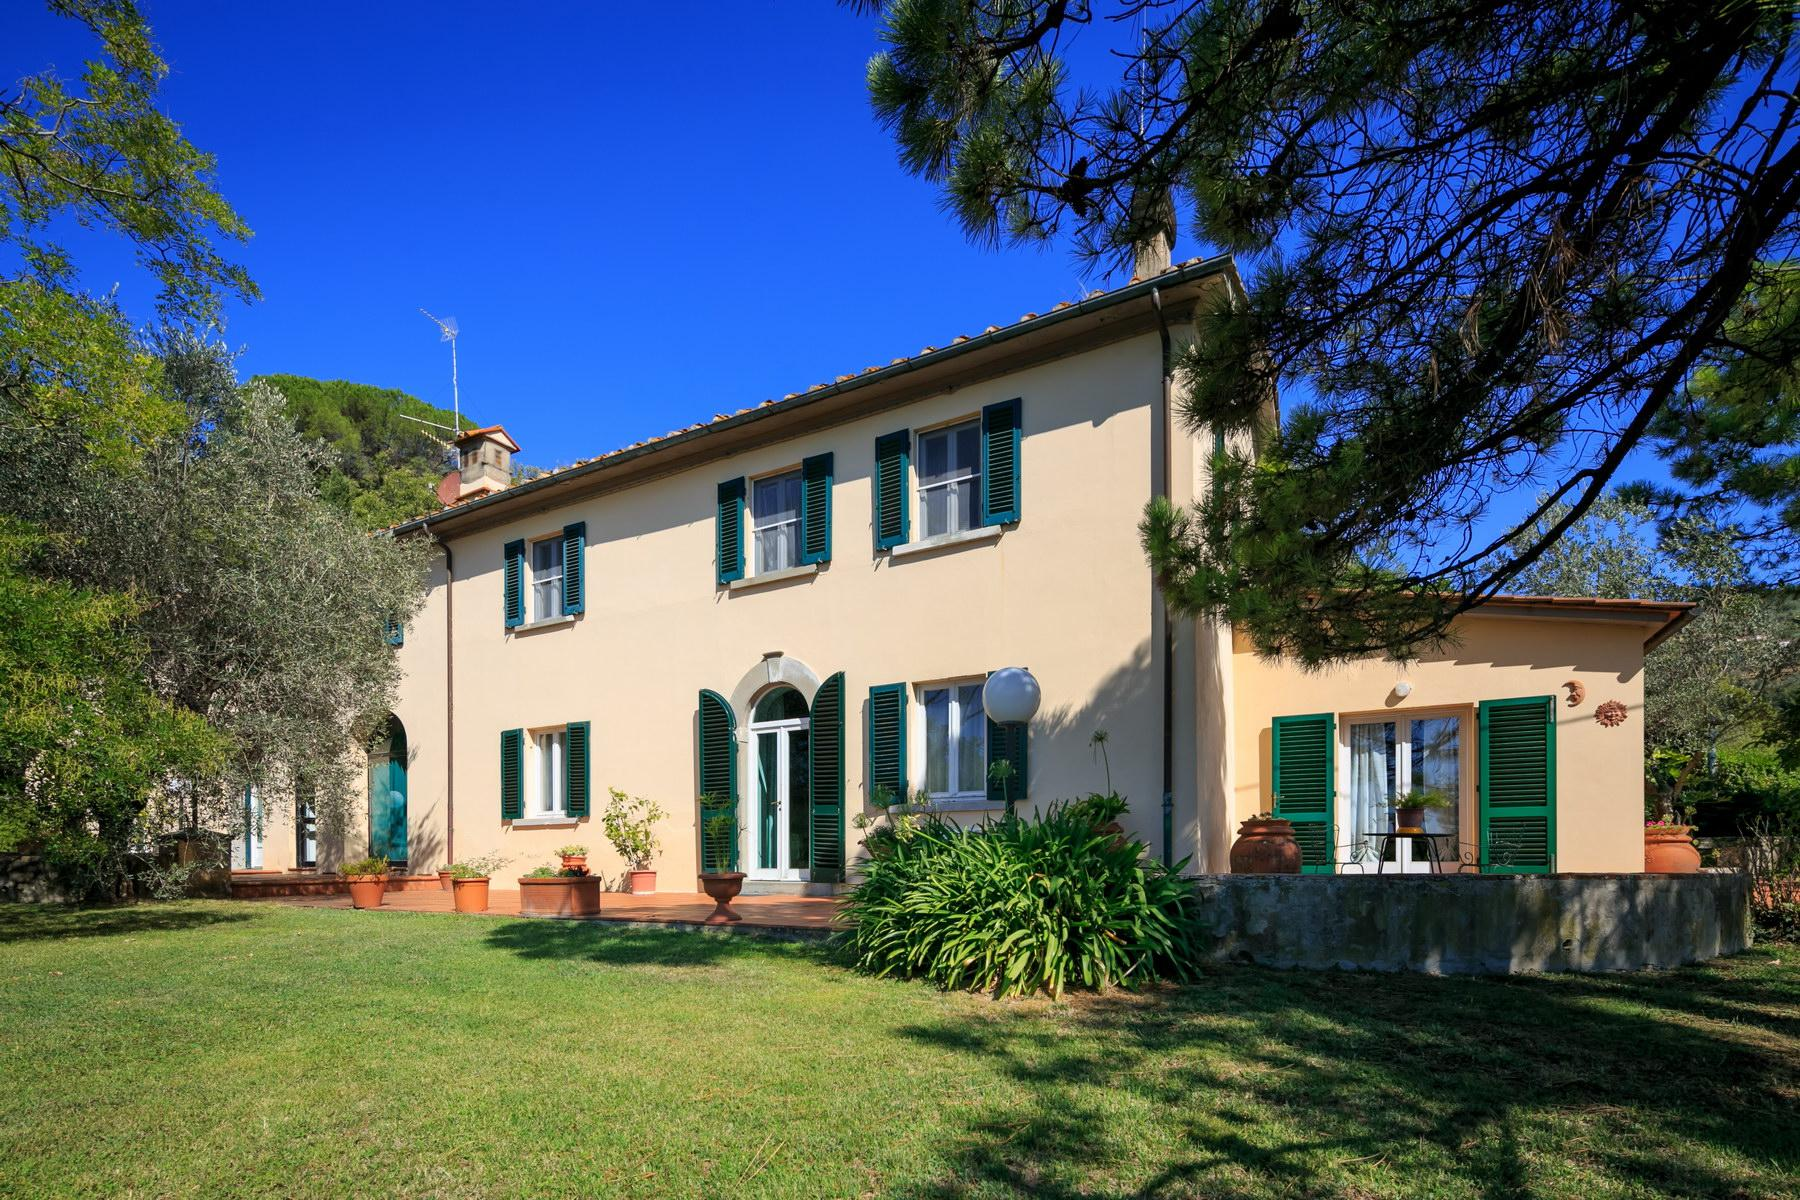 Wonderful farmhouse on the Tuscan hills - 6